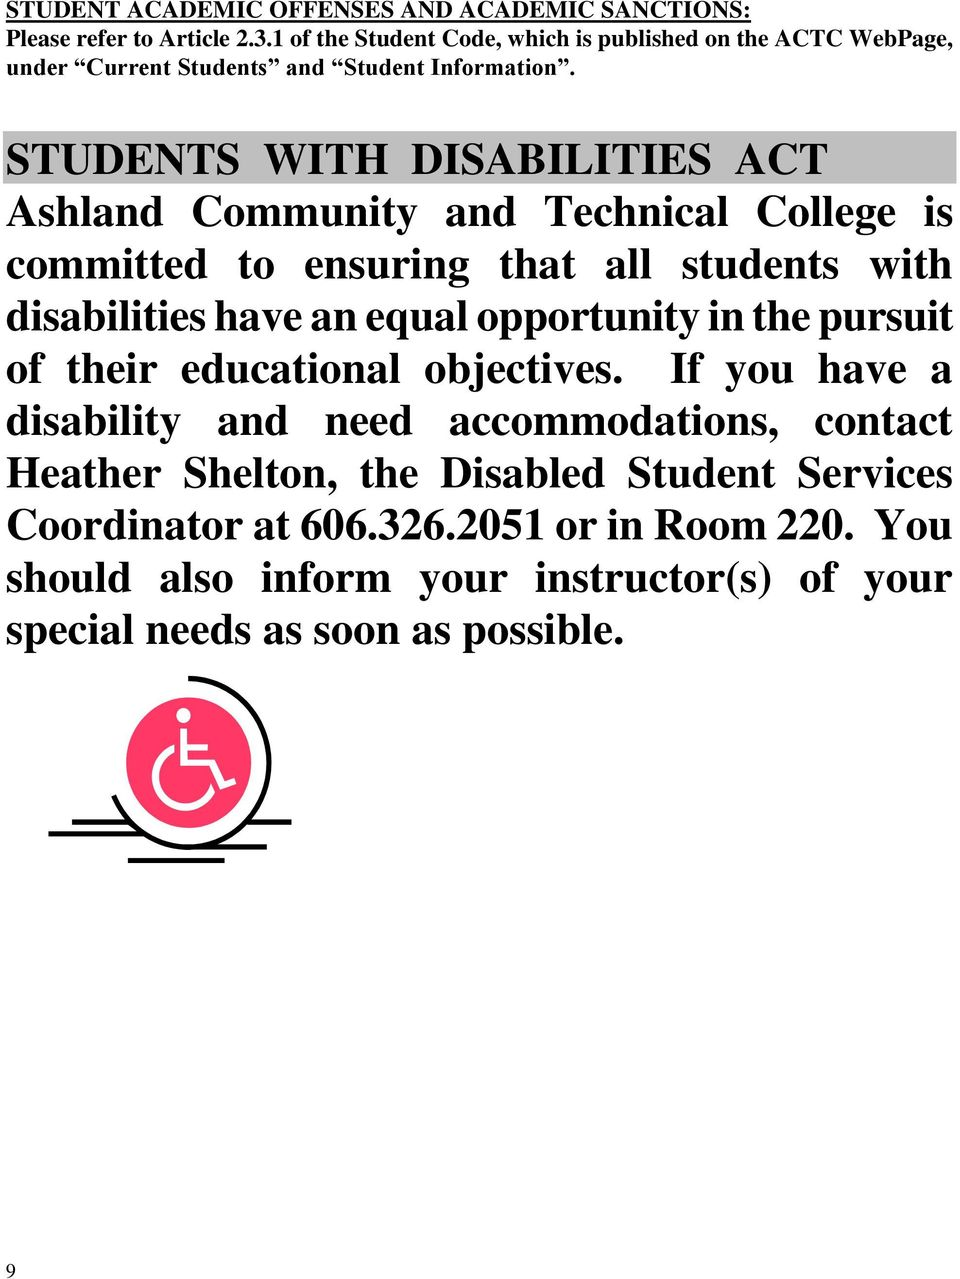 STUDENTS WITH DISABILITIES ACT Ashland Community and Technical College is committed to ensuring that all students with disabilities have an equal opportunity